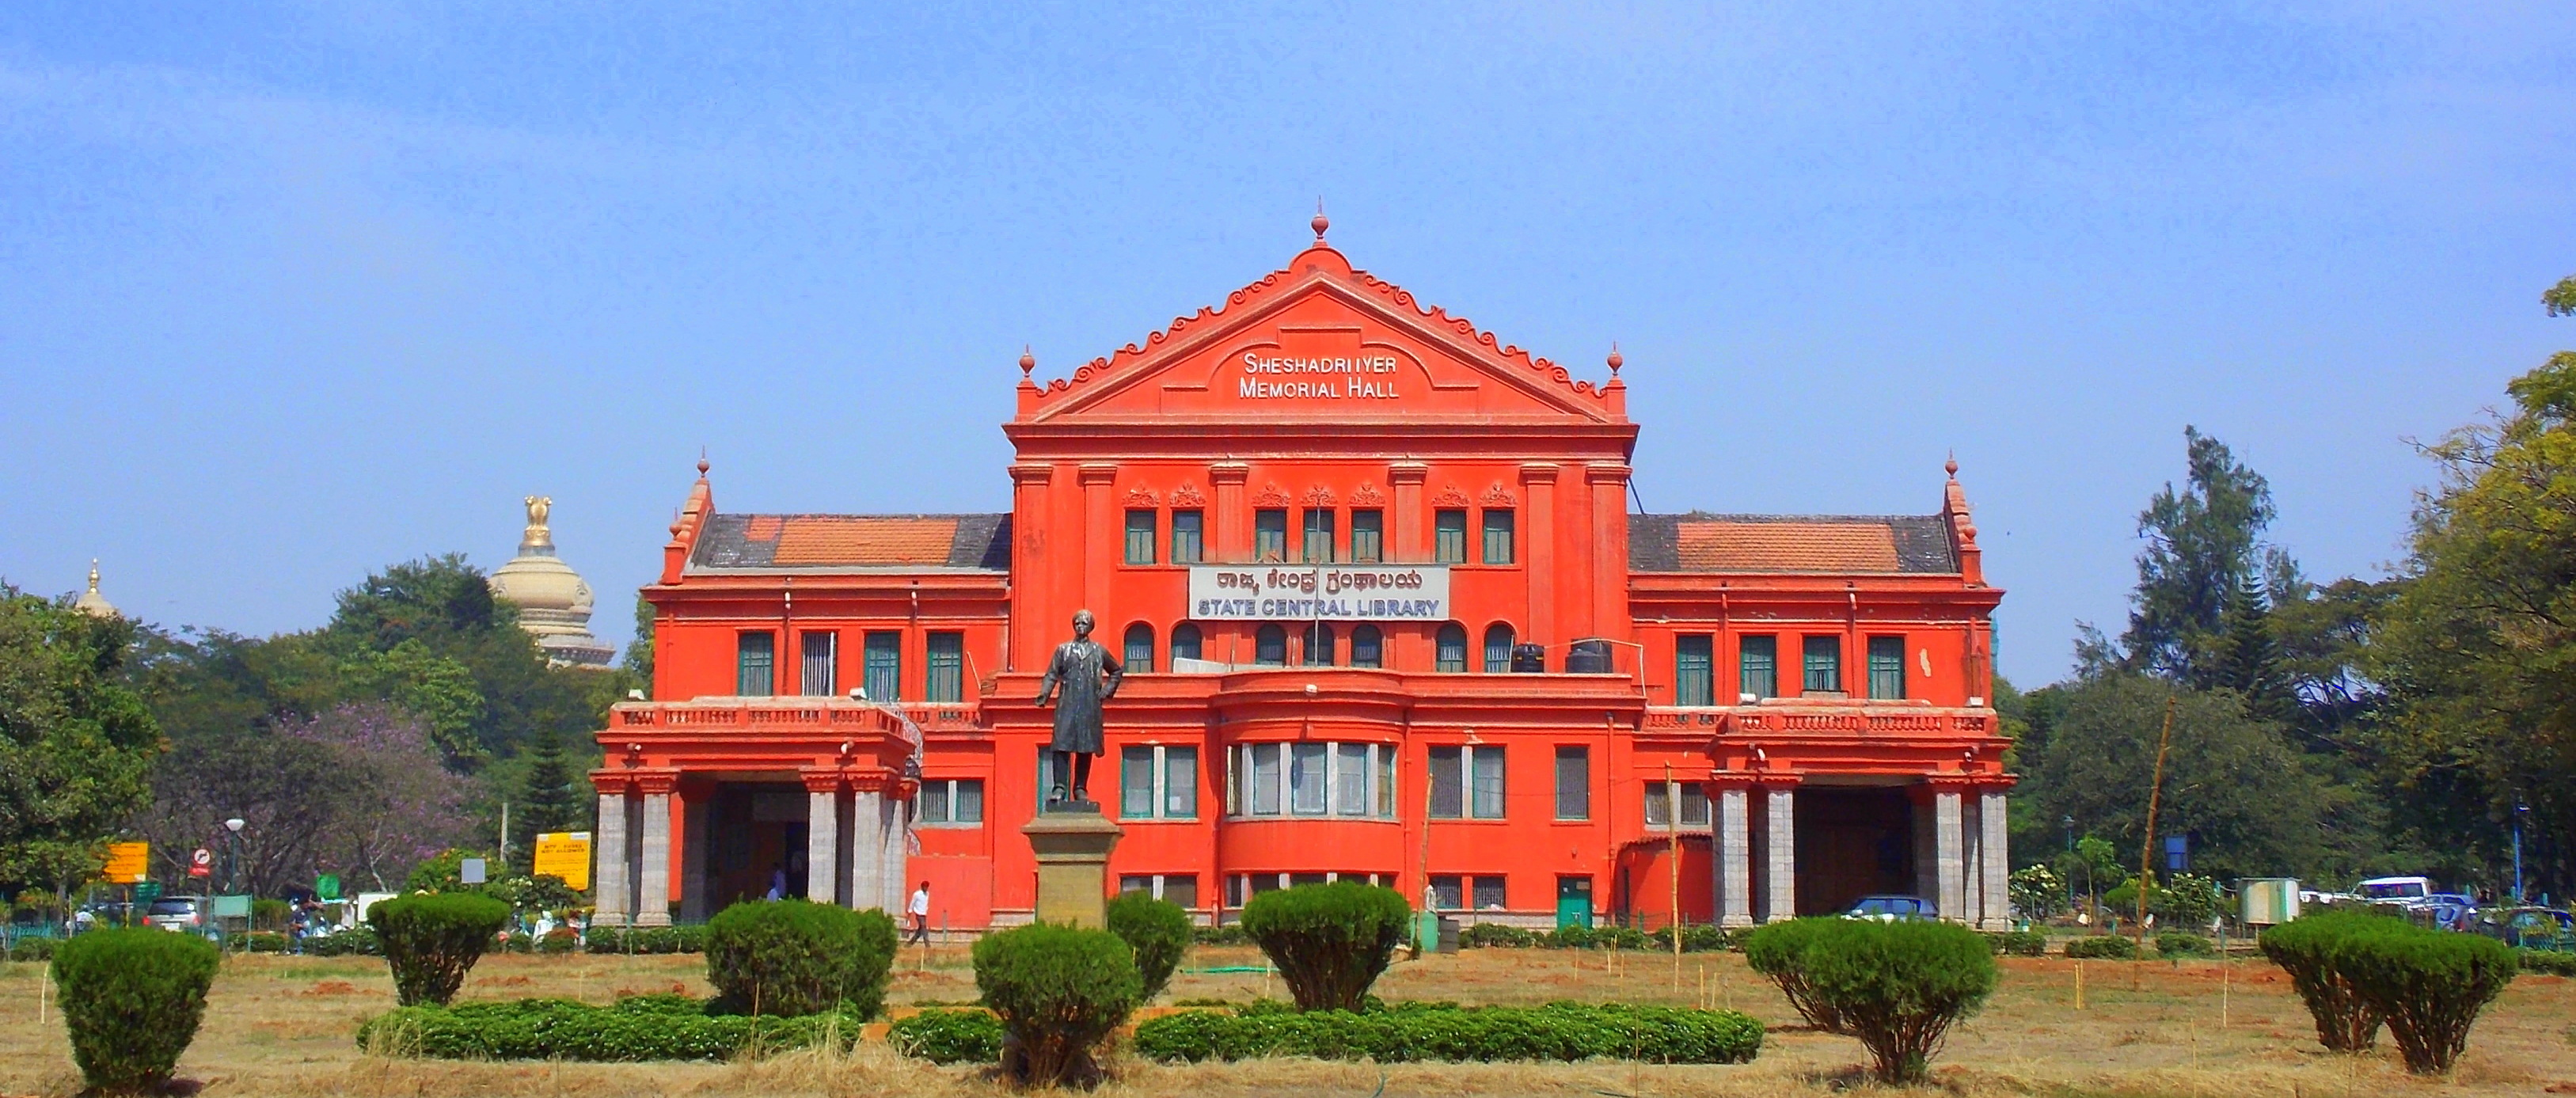 File:Central Library @ Cubbon Park.jpg - Wikimedia Commons: https://commons.wikimedia.org/wiki/file:central_library_@_cubbon...